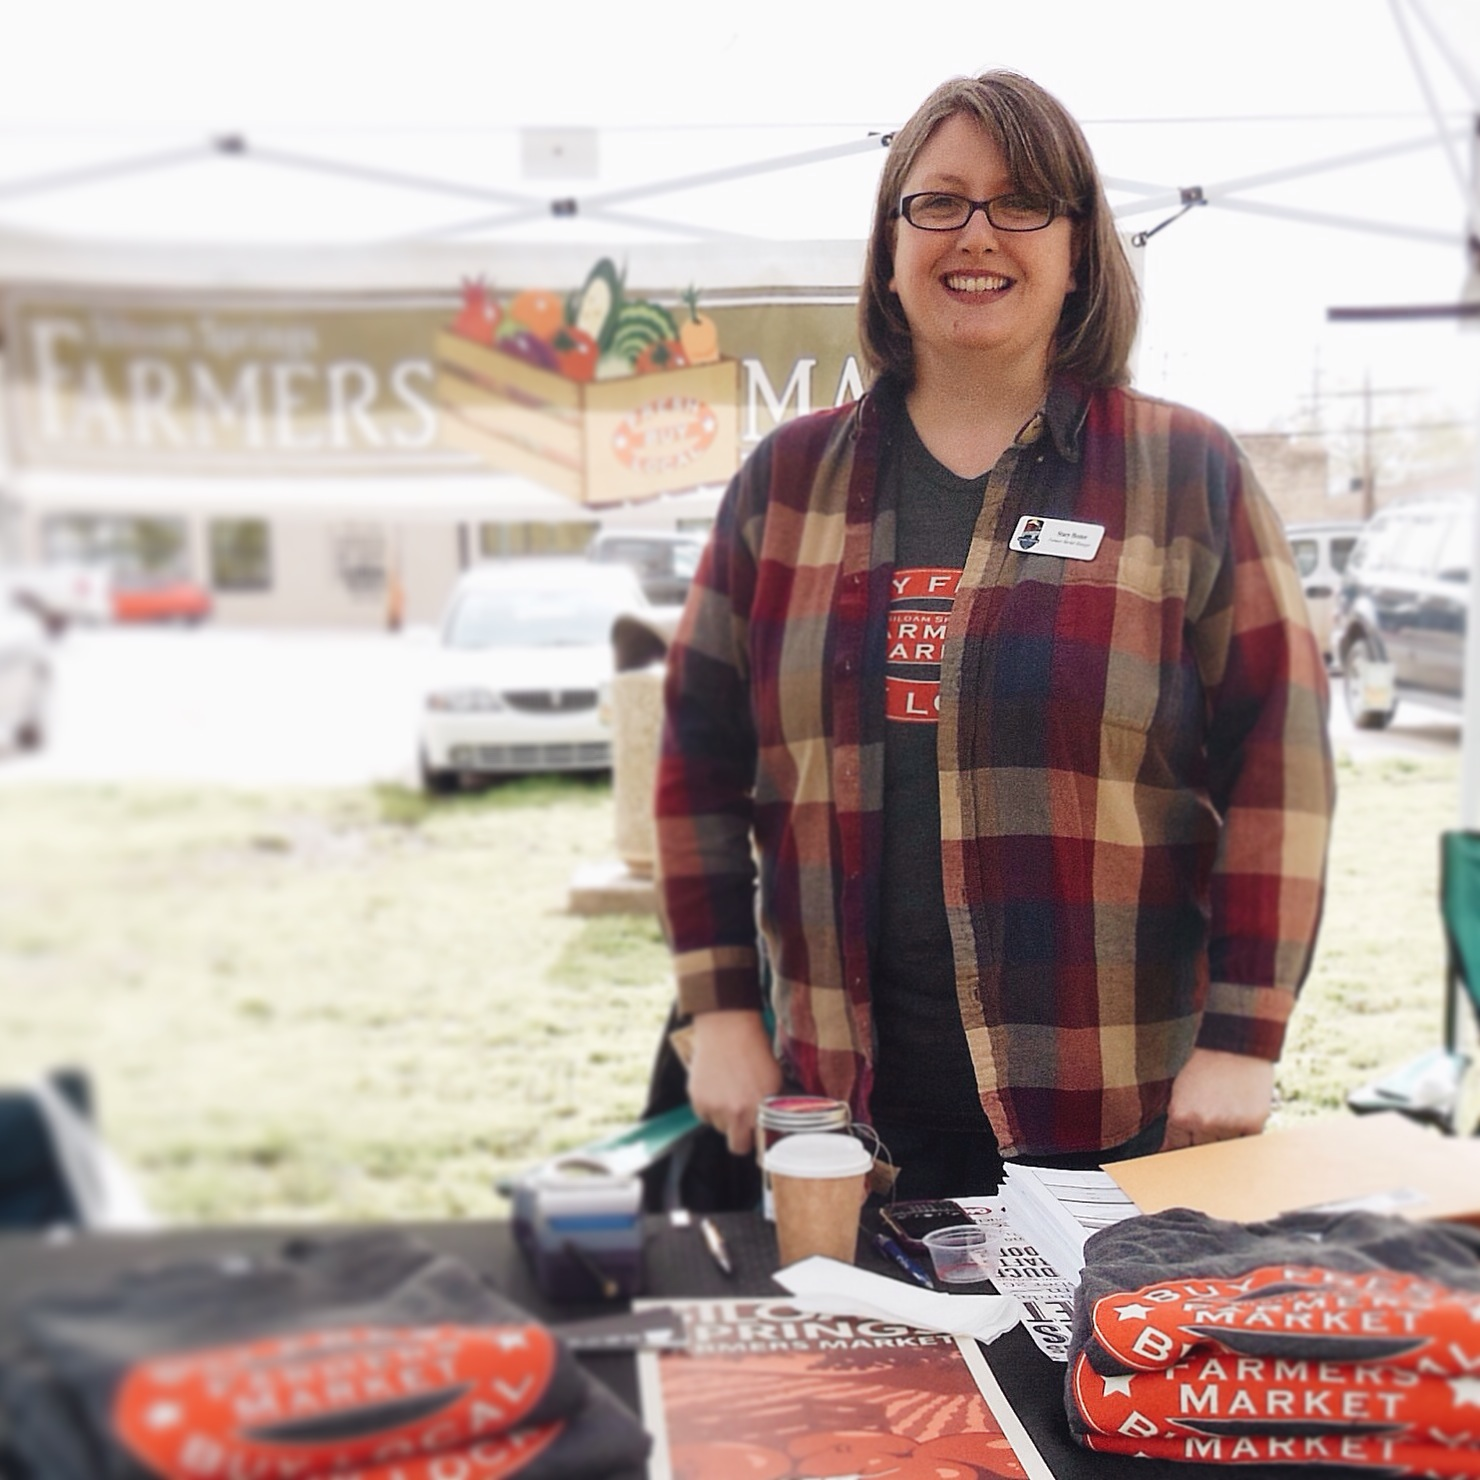 Siloam Springs Farmers Market Manager Photo